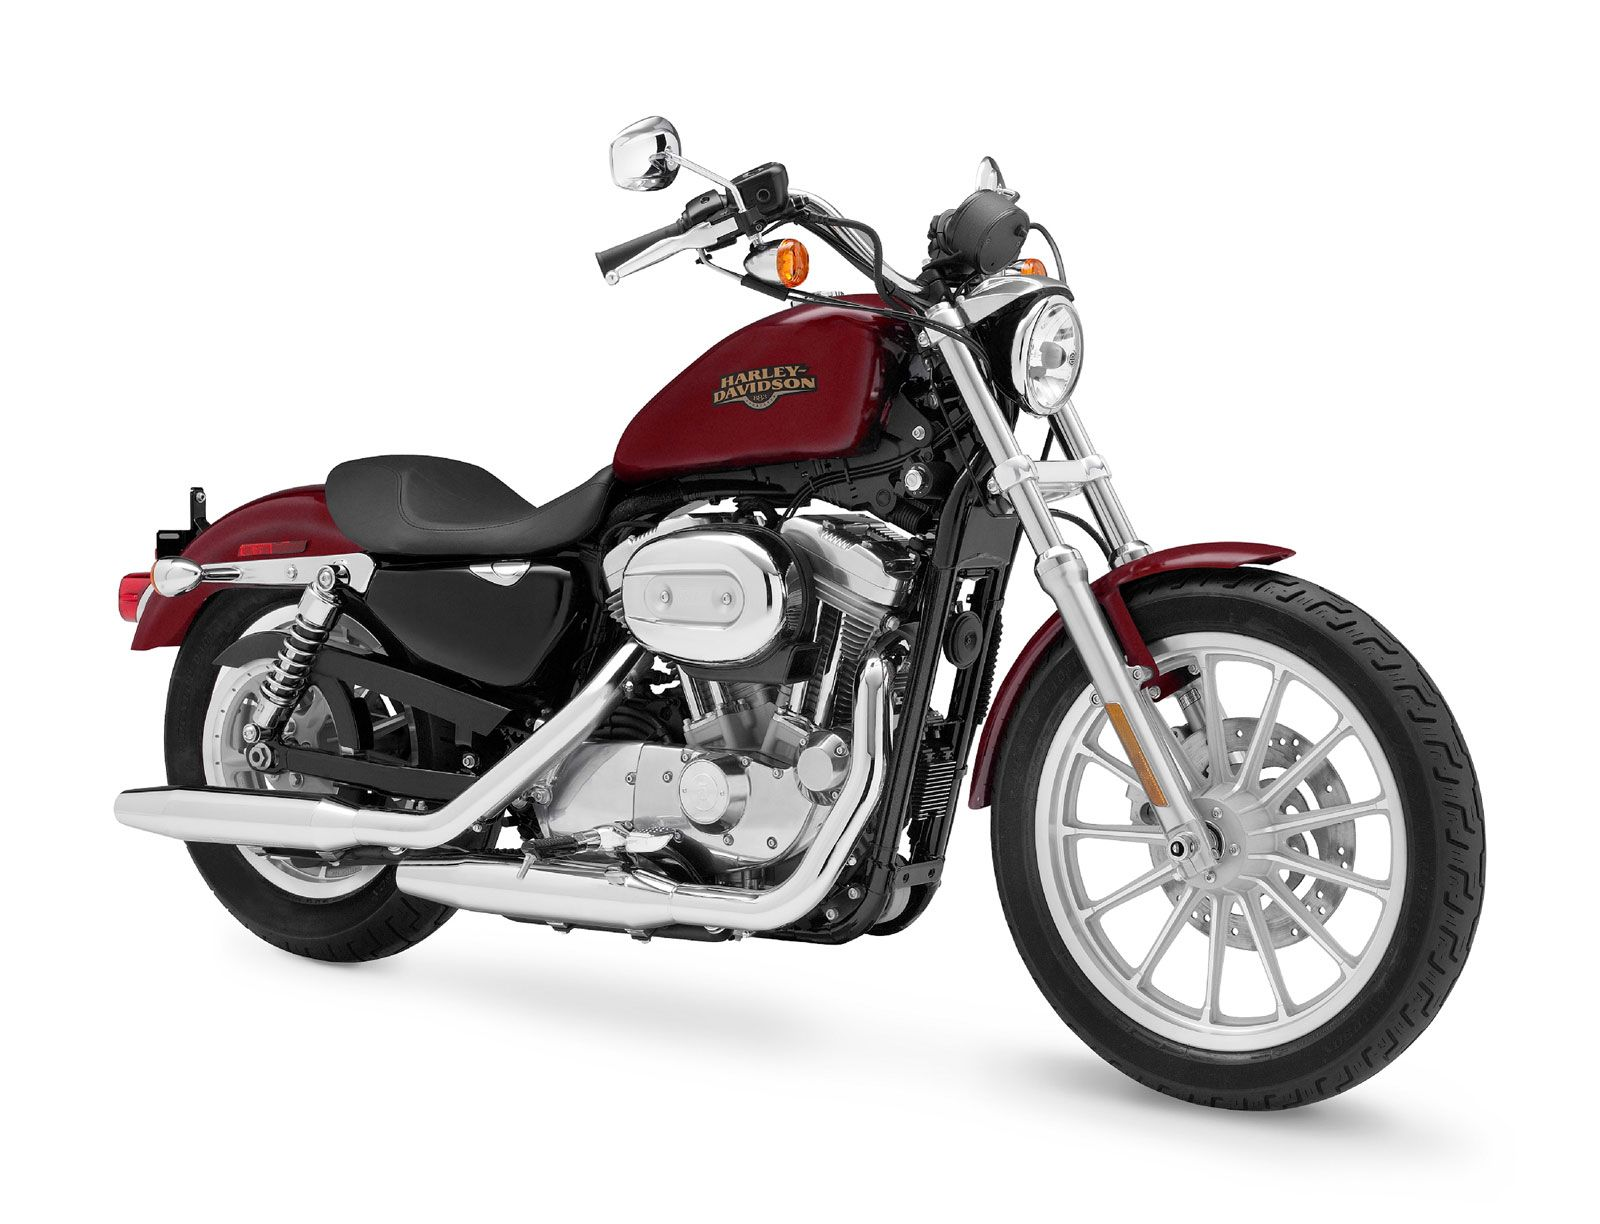 2009 harley davidson sportster 883 low this is like my new to me ride love love my my sporty